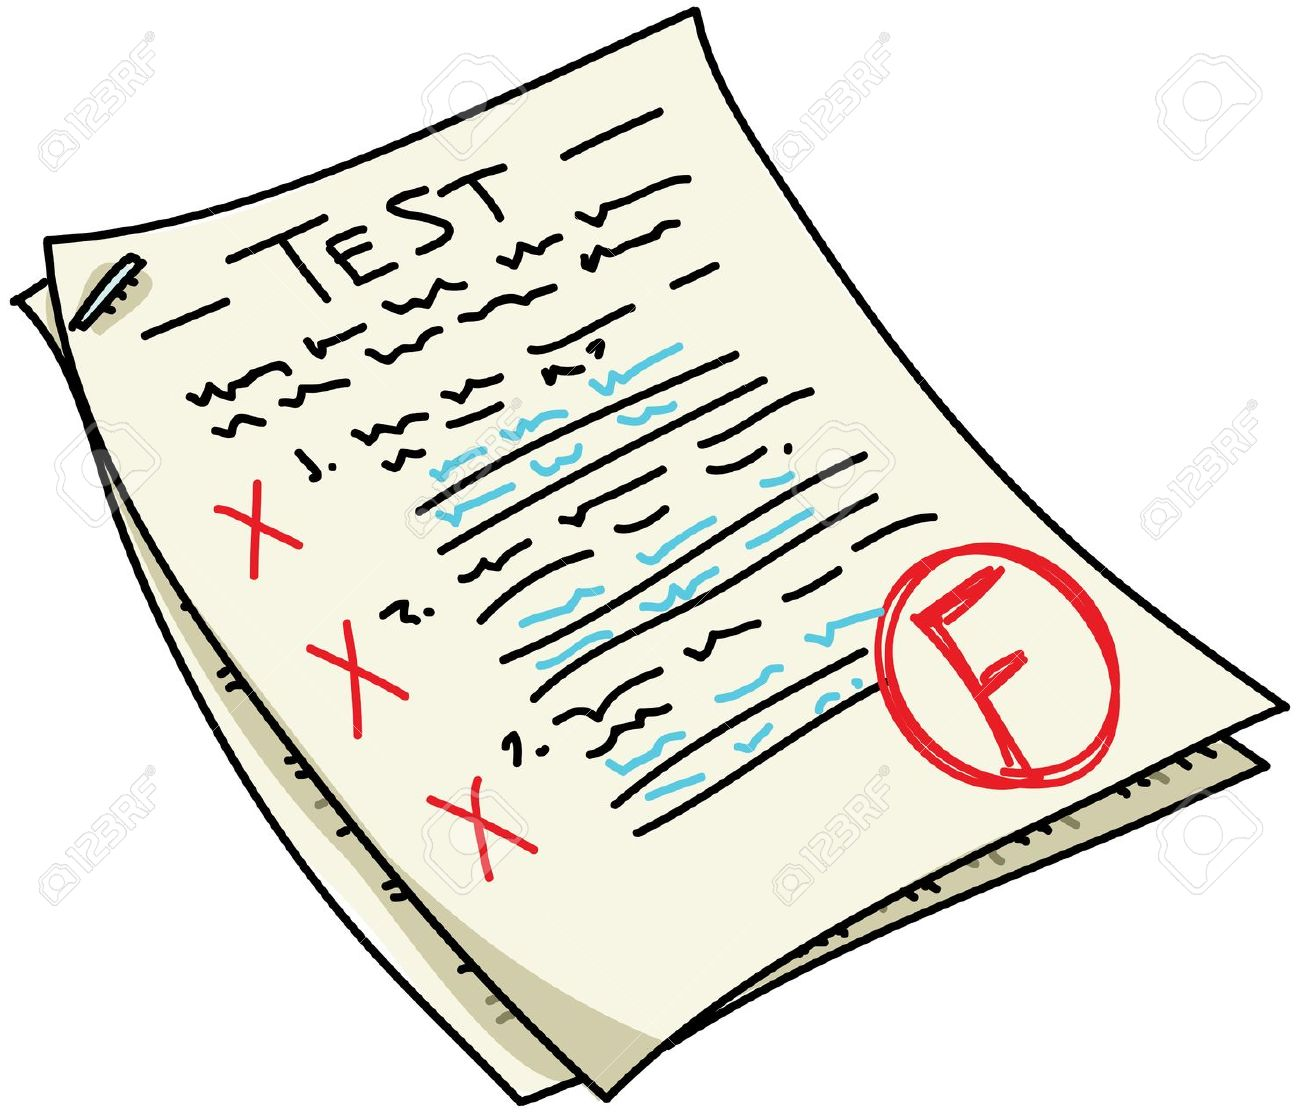 Test clipart failed test. Tests free download best